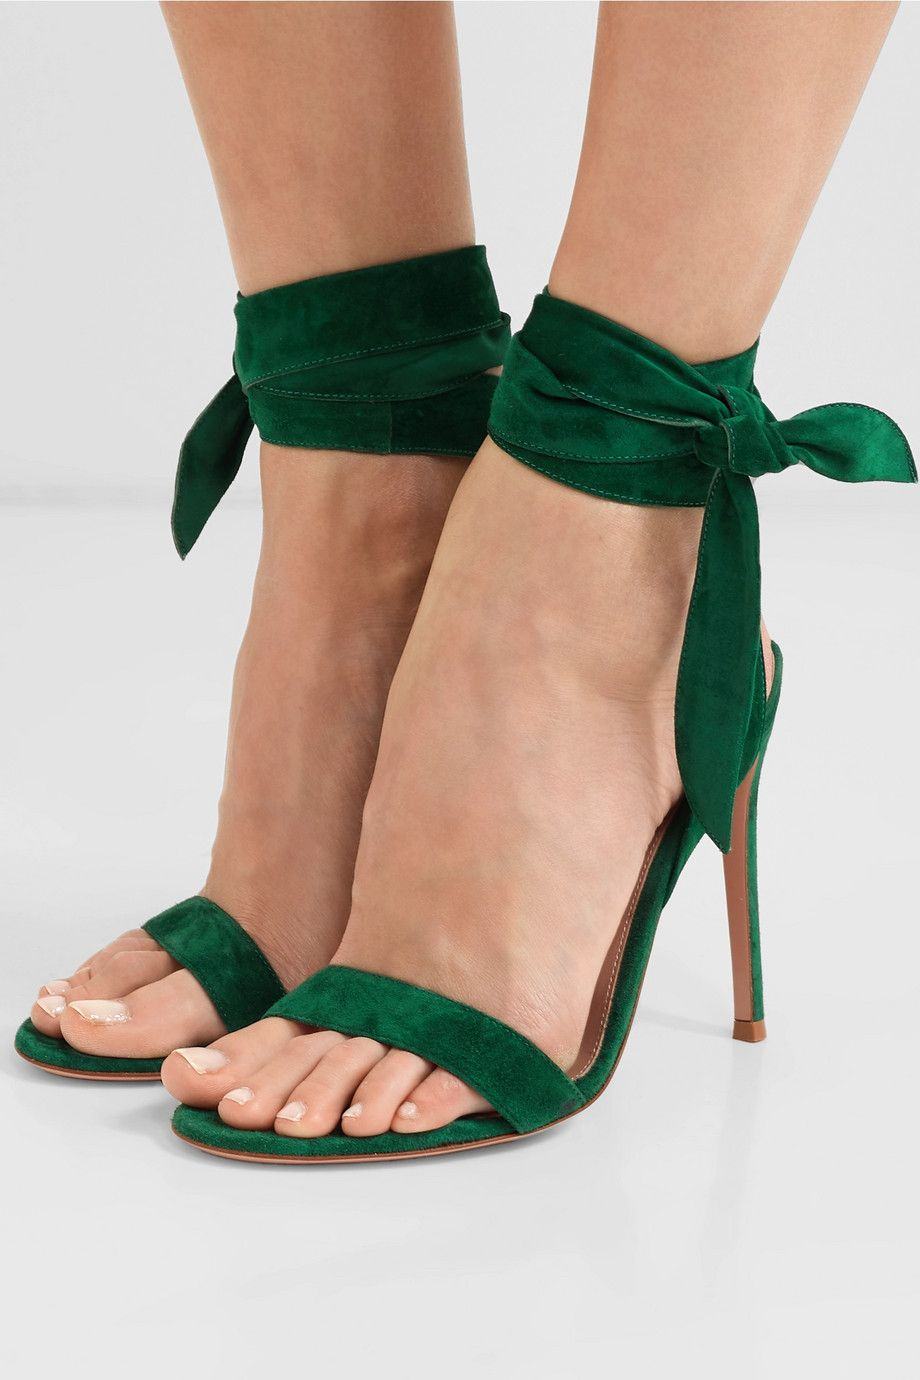 Pin on Legs Shoes Green Dress